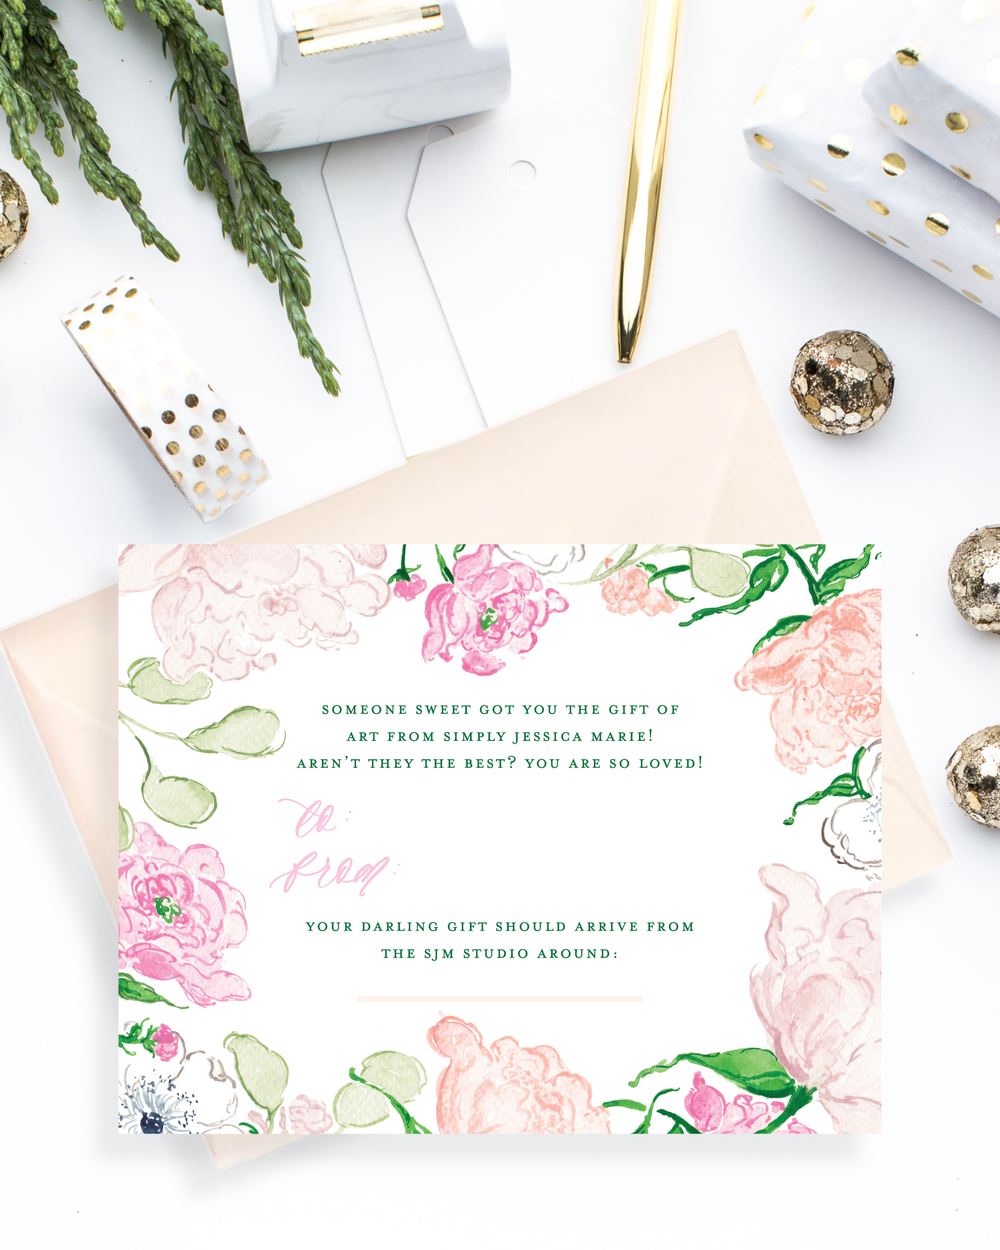 Personalized Gift Certificate by Simply Jessica Marie | SC Stockshop